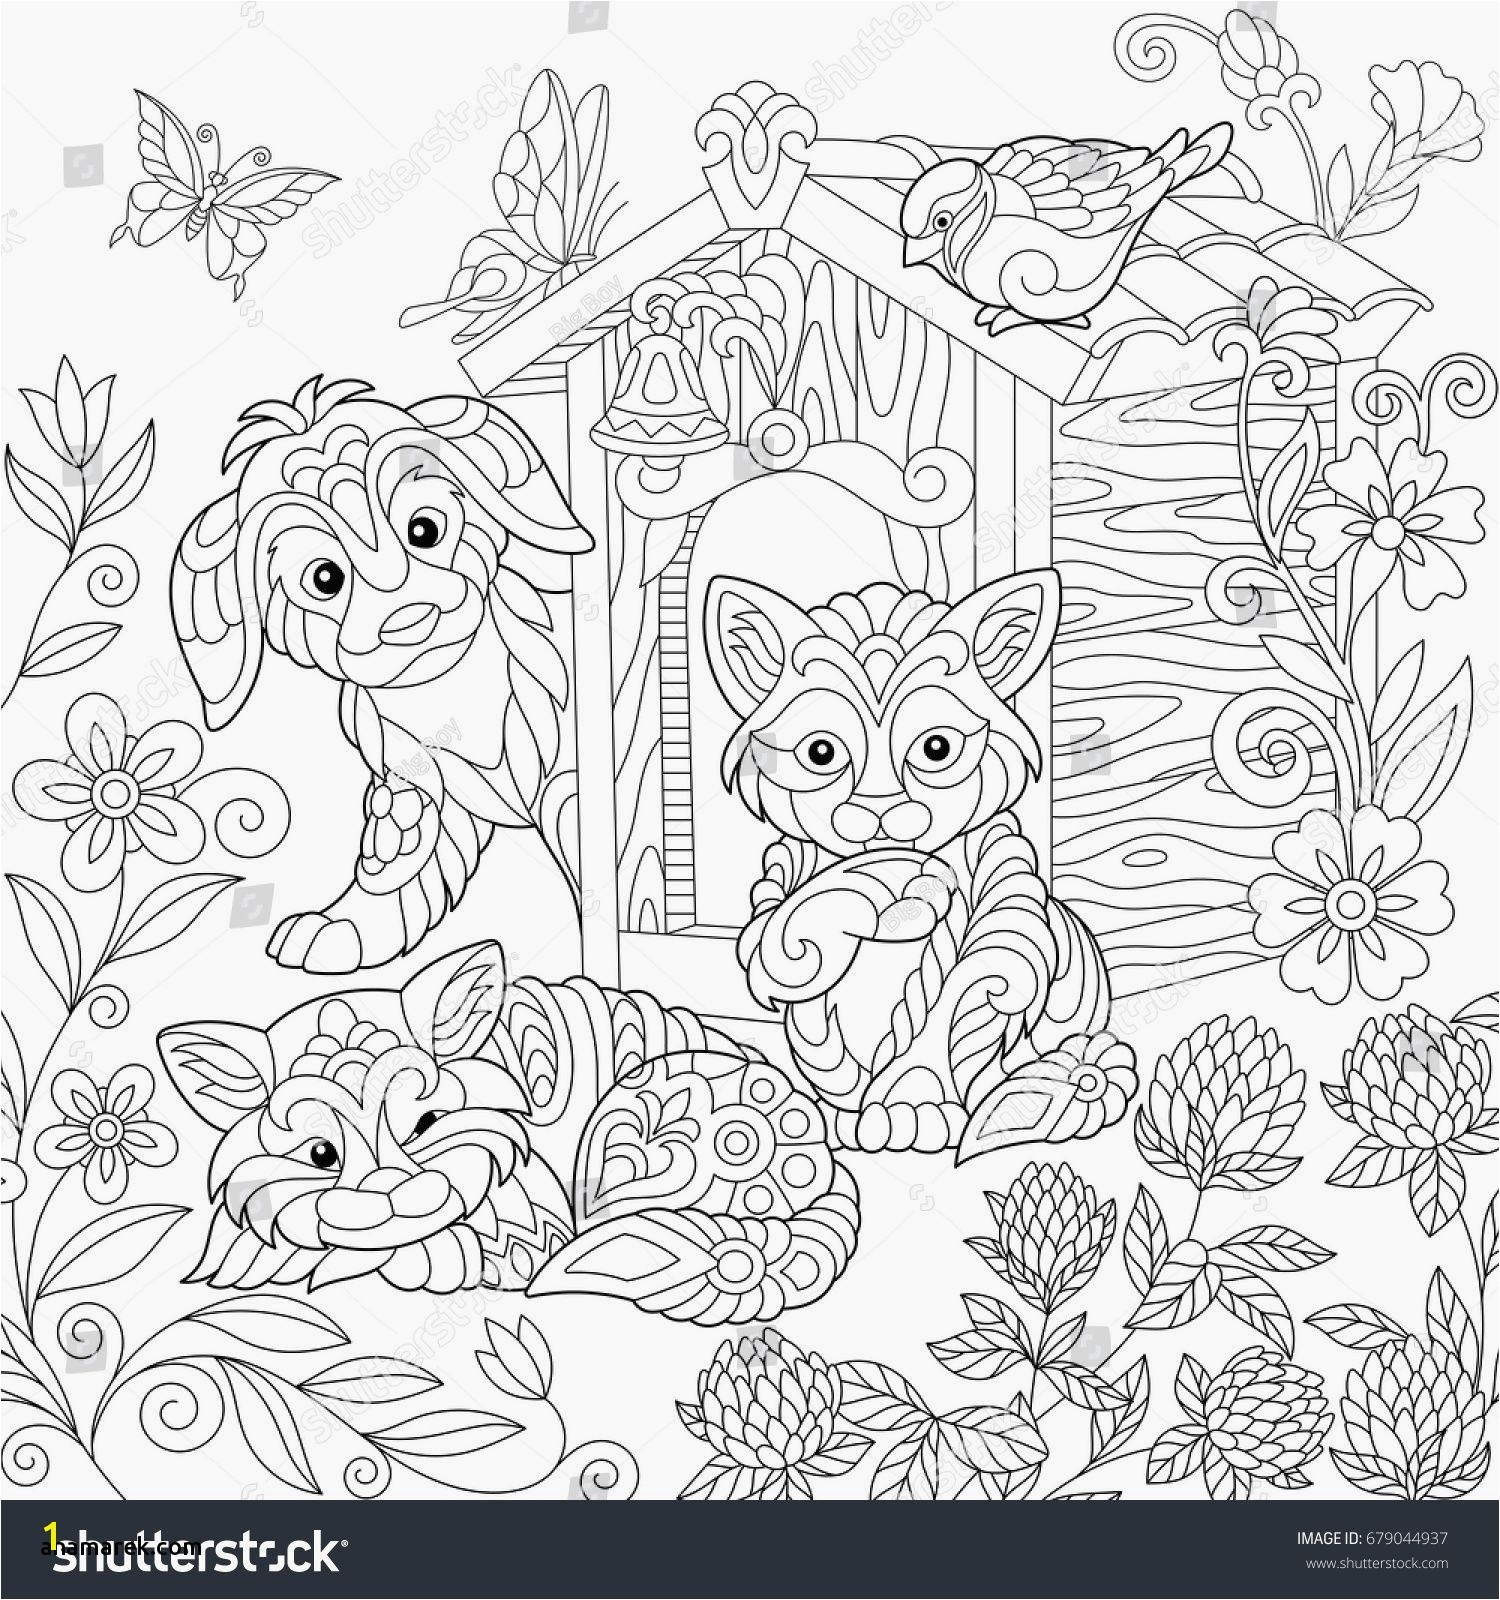 New cat in the hat coloring sheet Free 7c Cat In The Hat Coloring Book